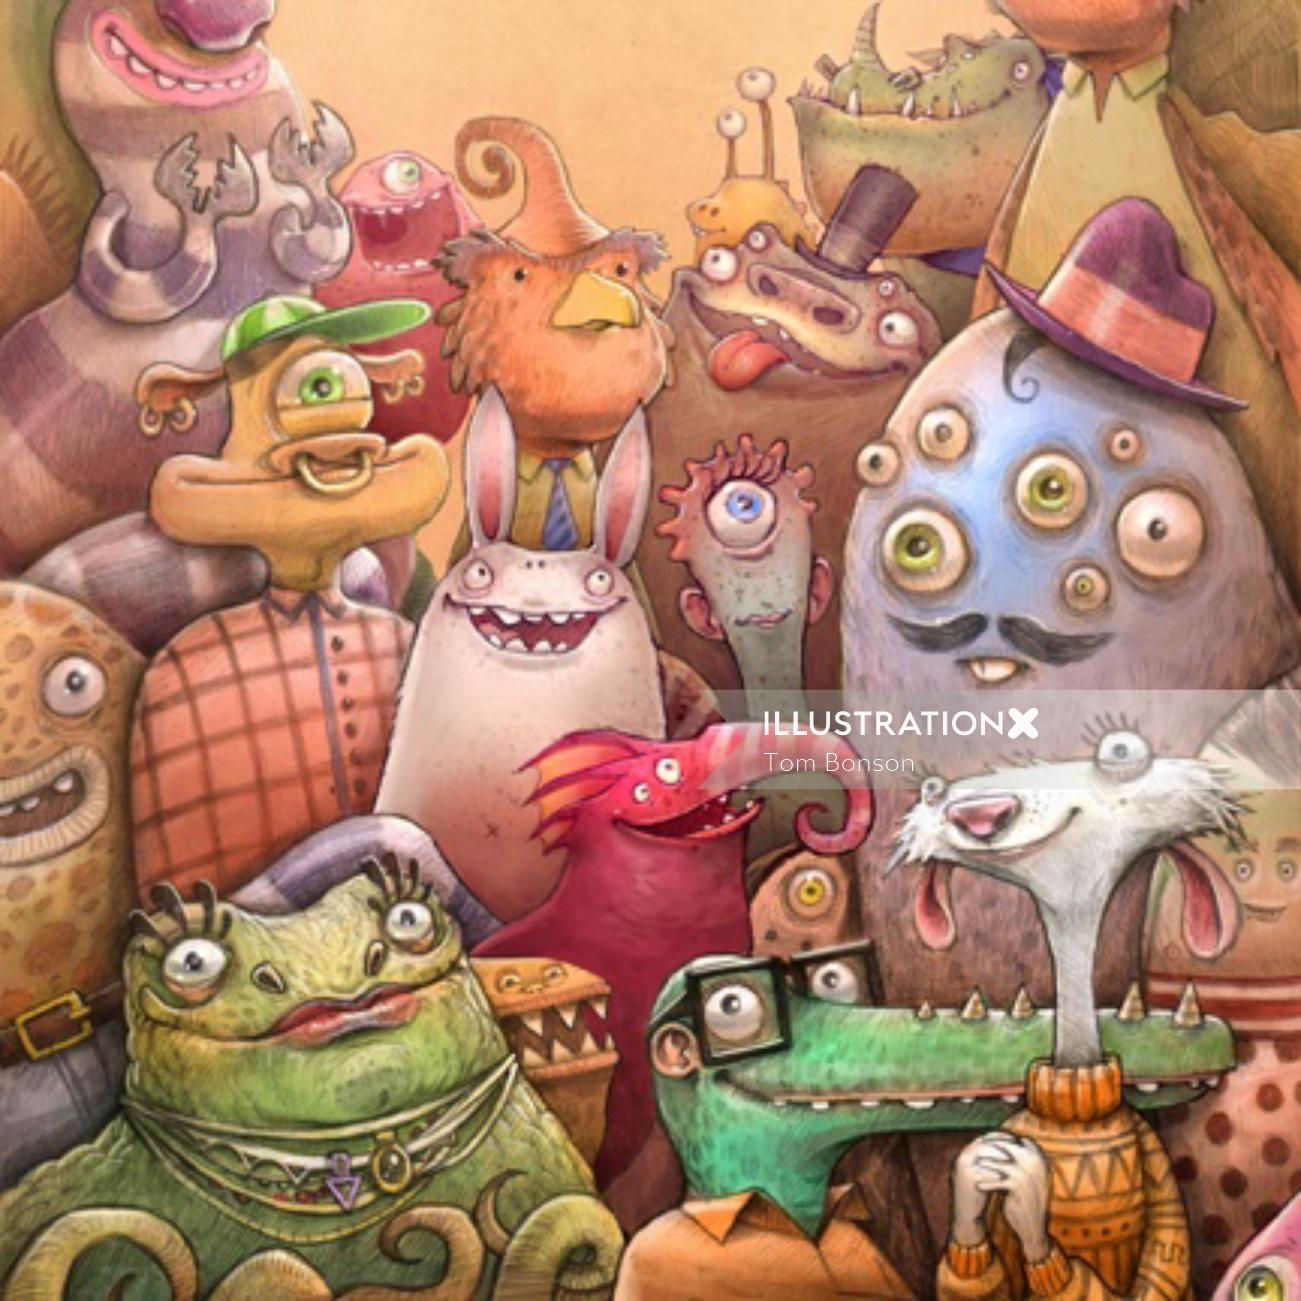 Monster Crowd character design